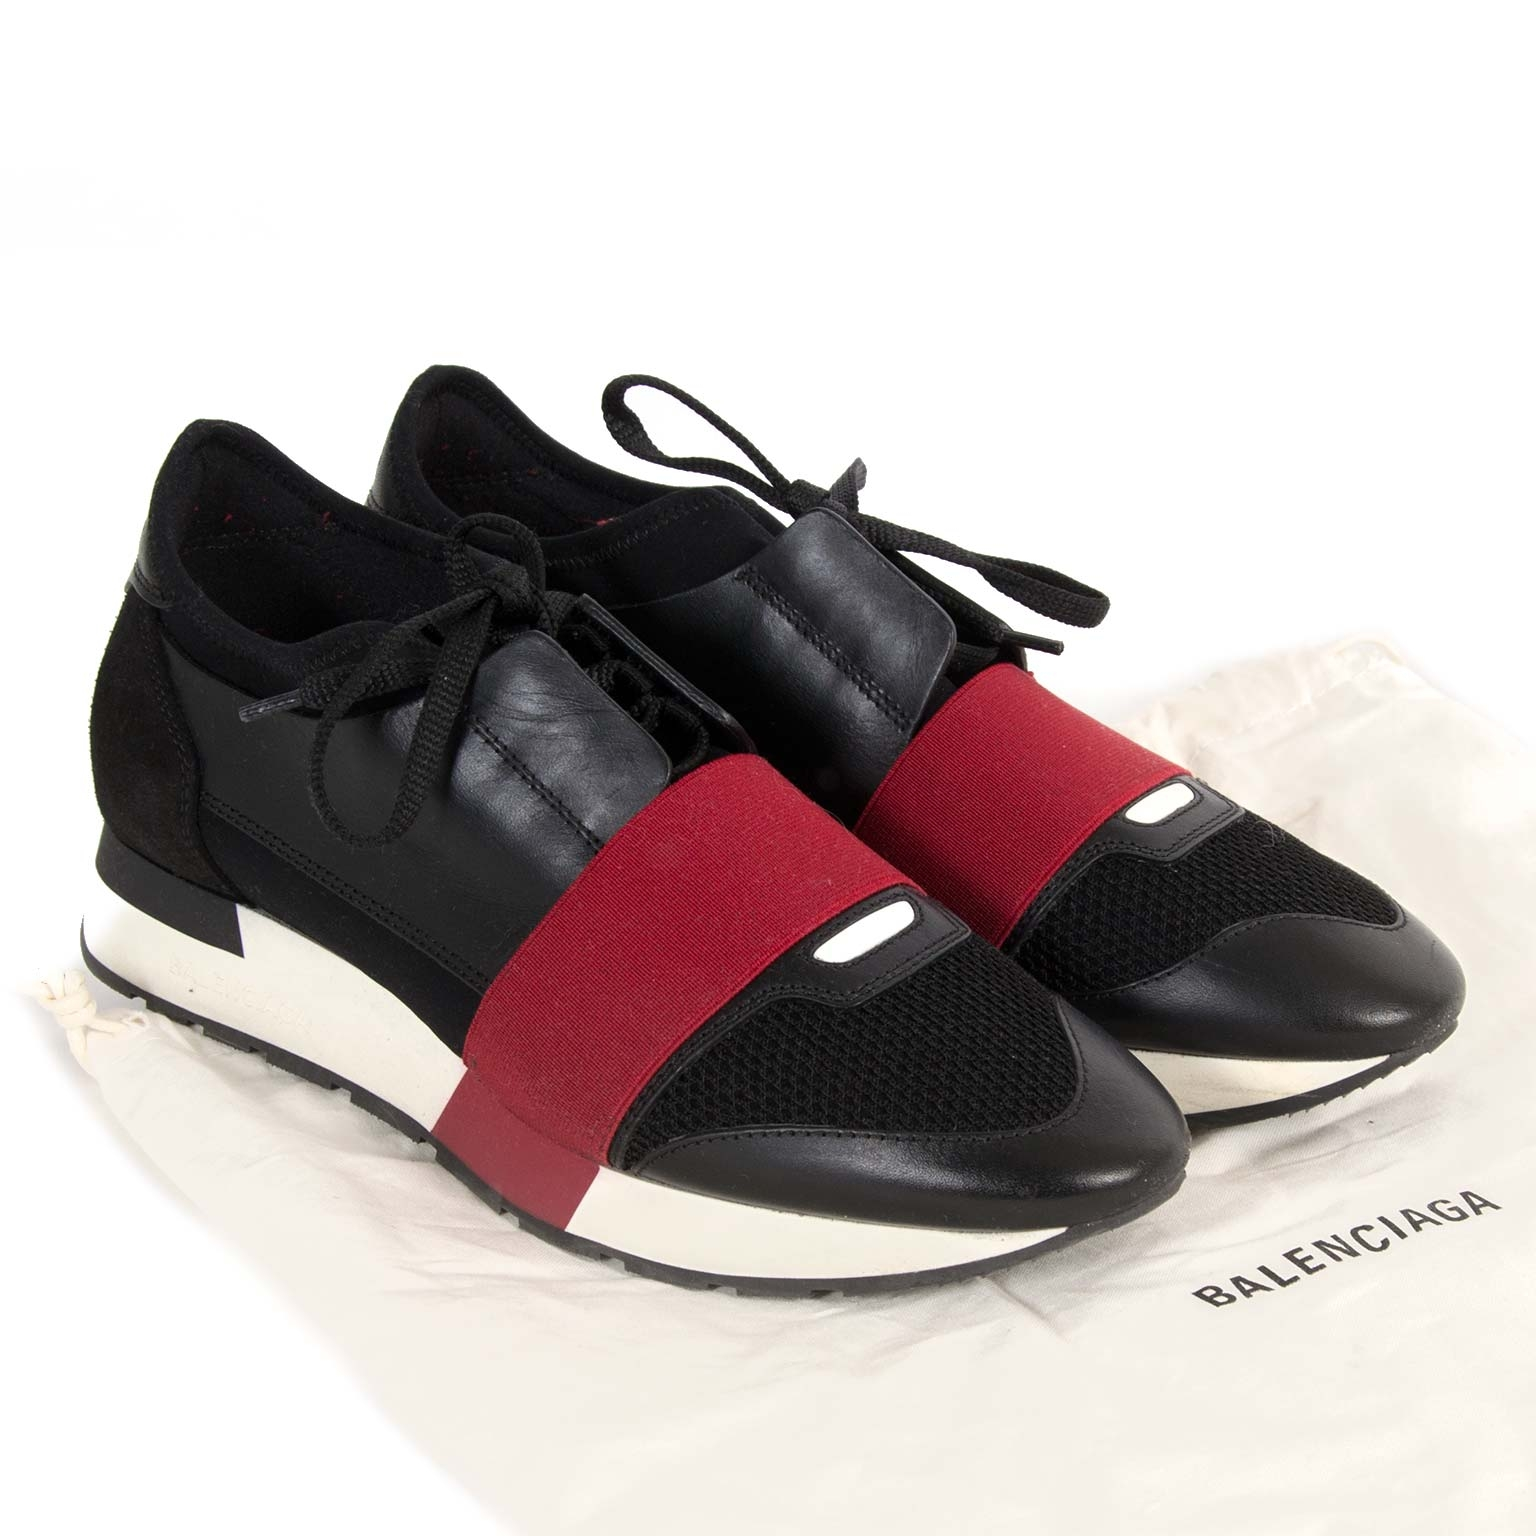 Balenciaga Race Runners Black And Red - Size 39 now for sale at labellov vintage fashion webshop belgium